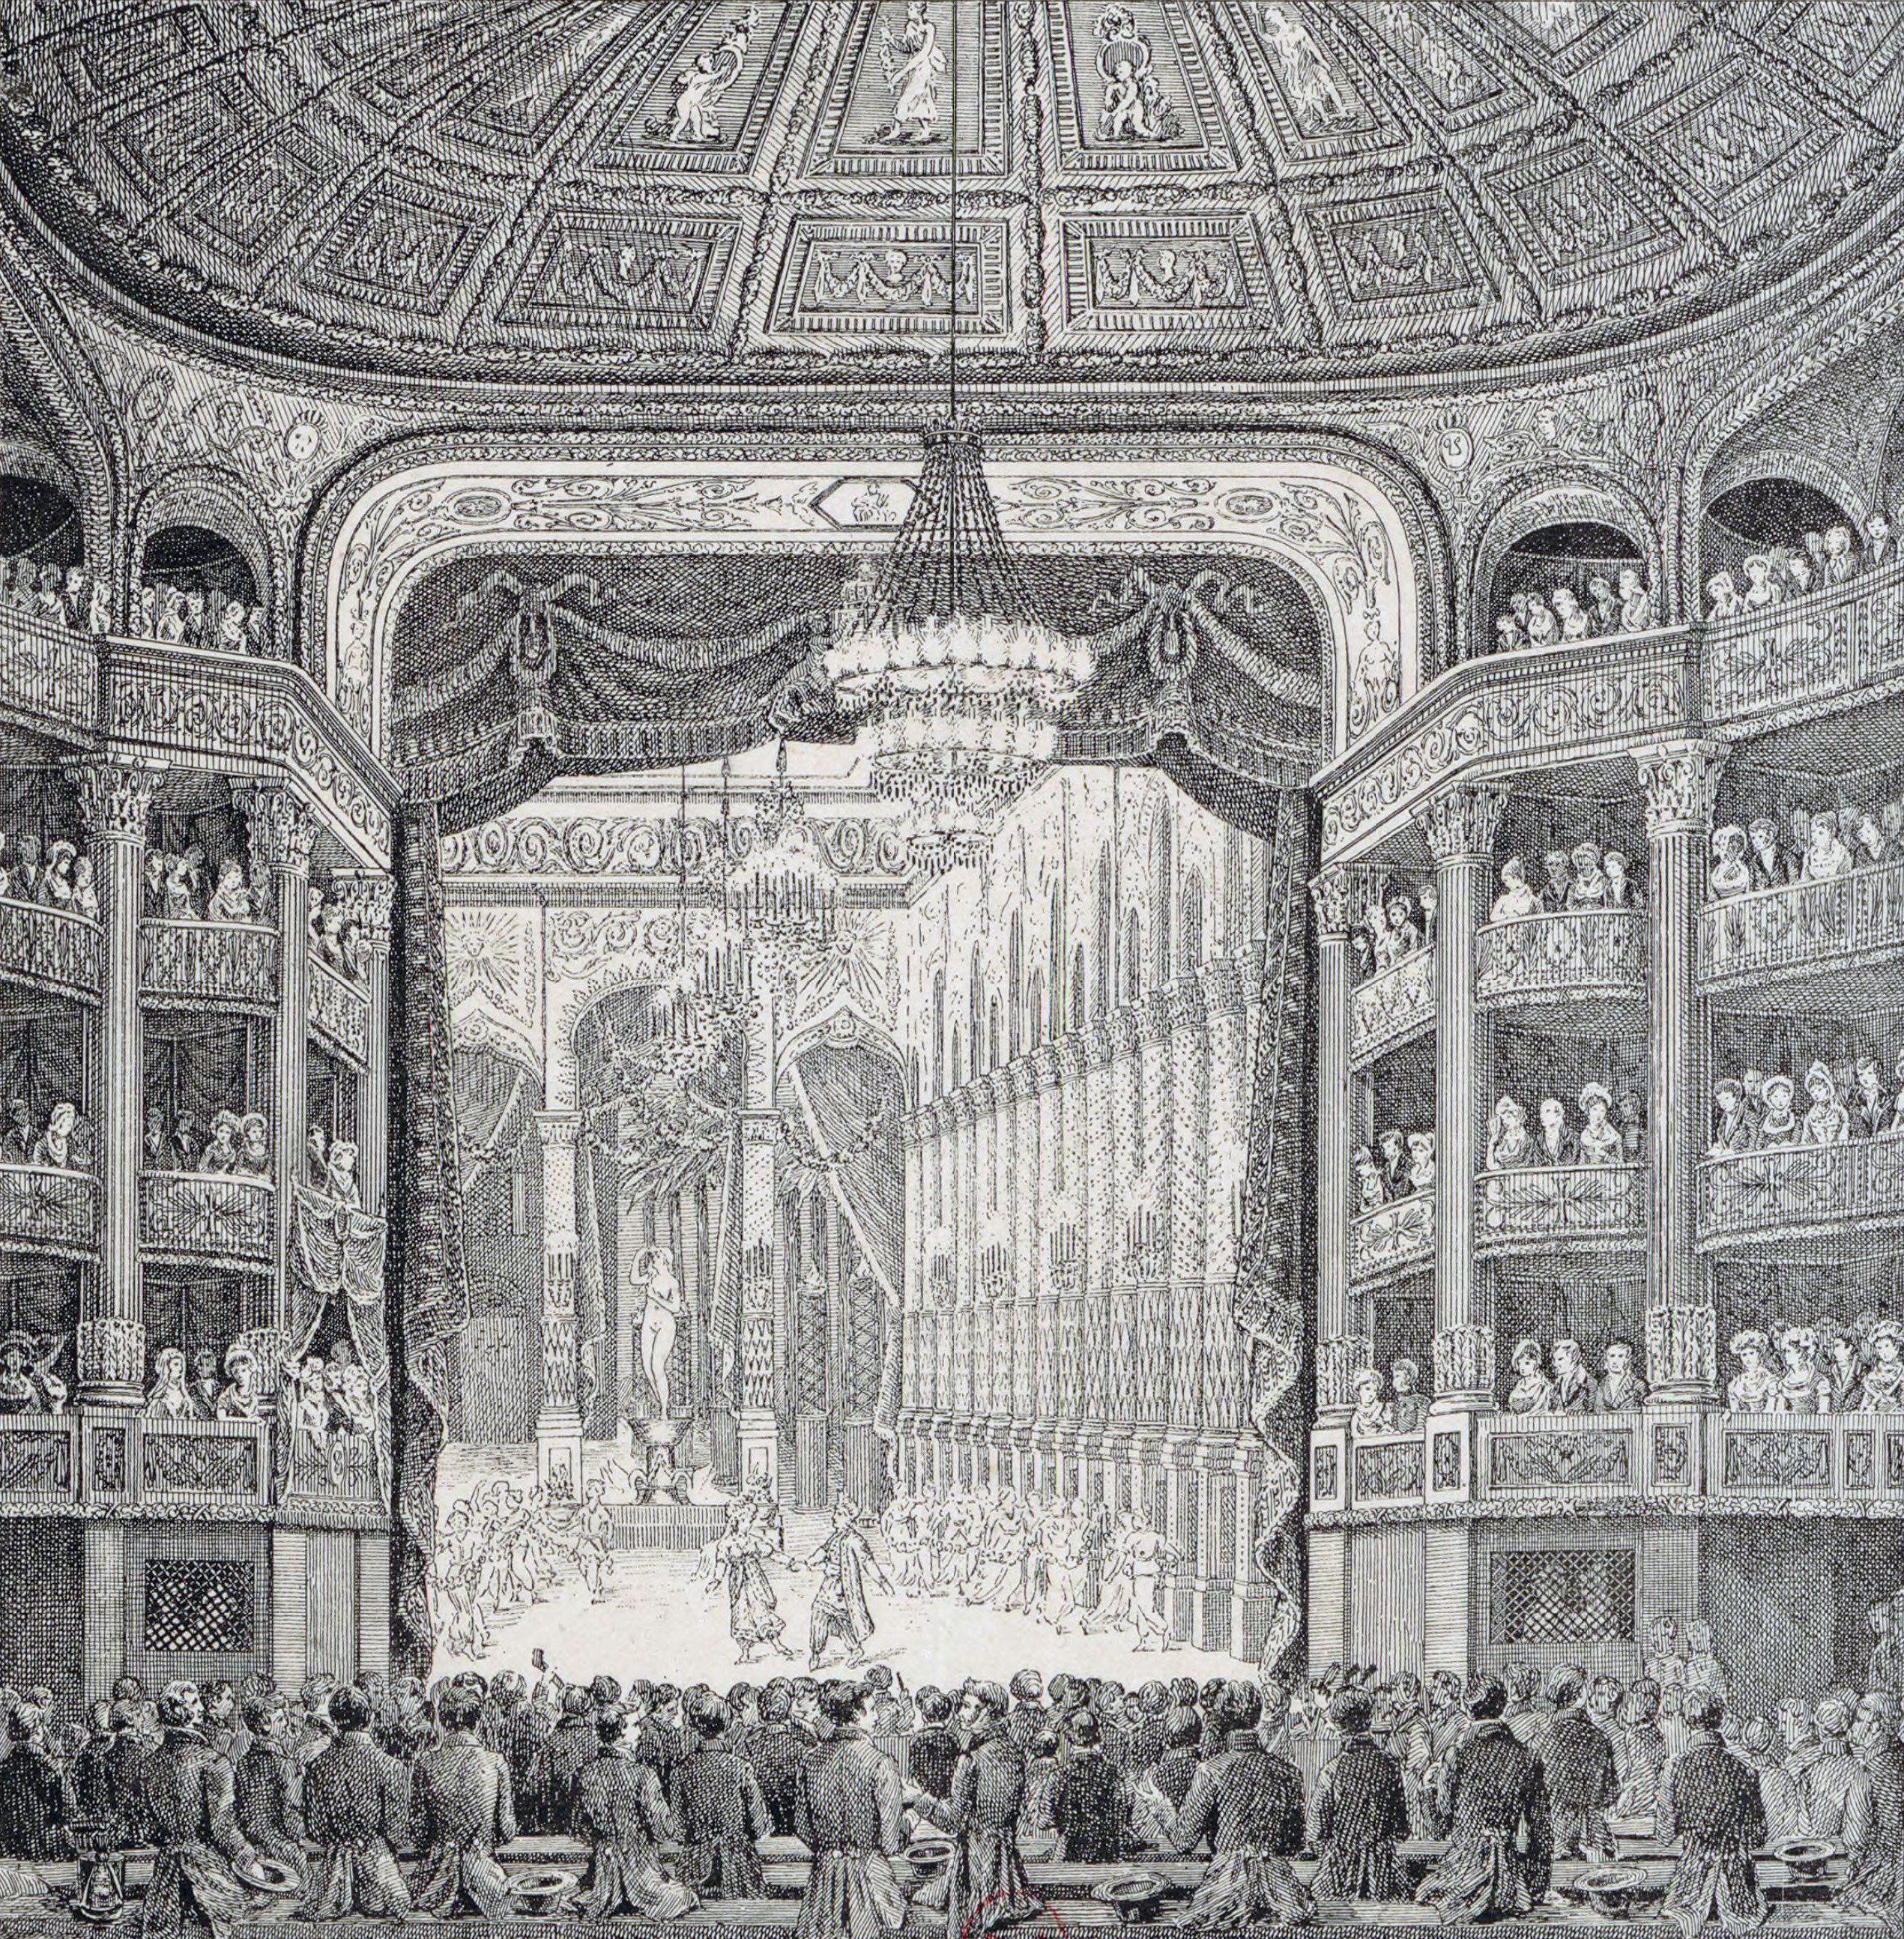 Inauguration of the Salle Le Peletier with Les Bayadères 1821 Gallica btv1b84367769 adjusted